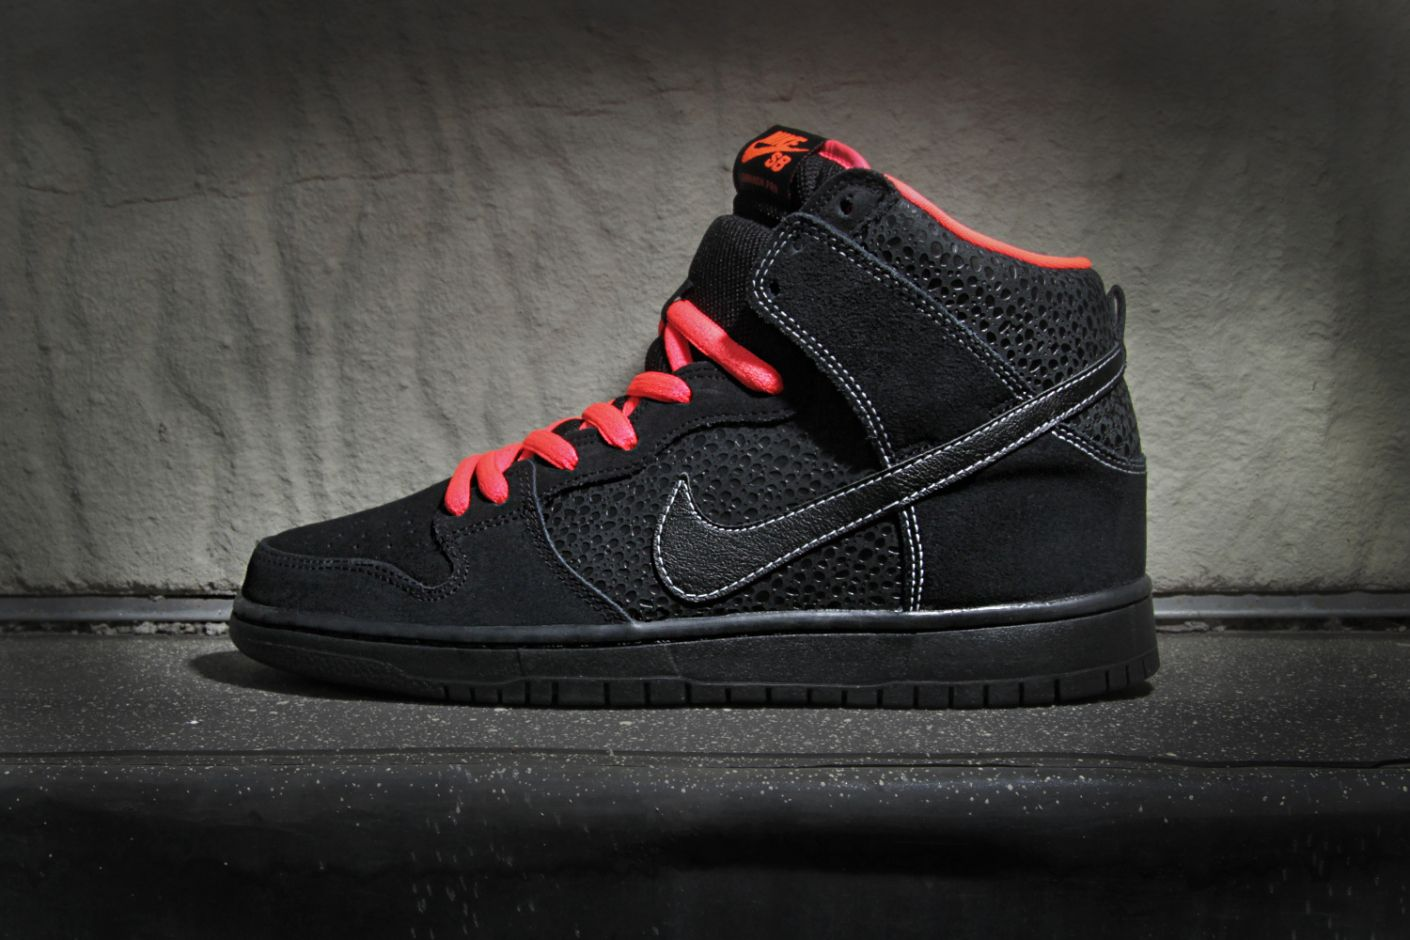 timeless design 39055 6b3c2 Nike SB Dunk High Pro BlackAtomic Red. I love the laces. Doubt theyre  going to come in womens sizes though.